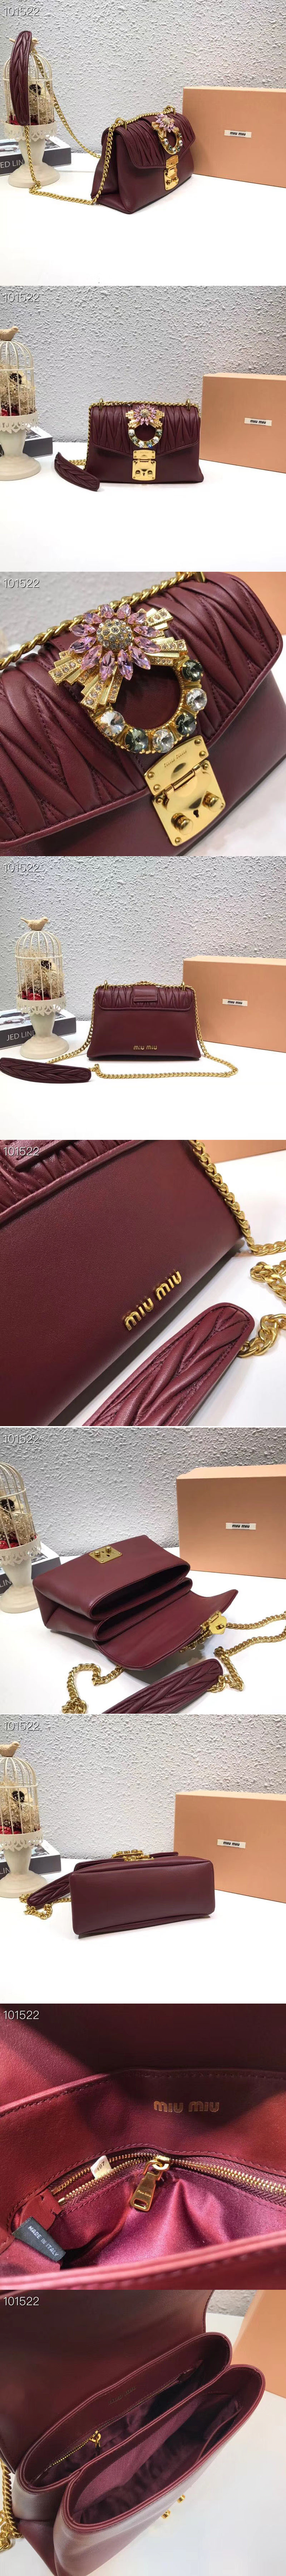 Replica Miu Miu Matelasse Nappa Leather Tote Bag 5BD103 Wine